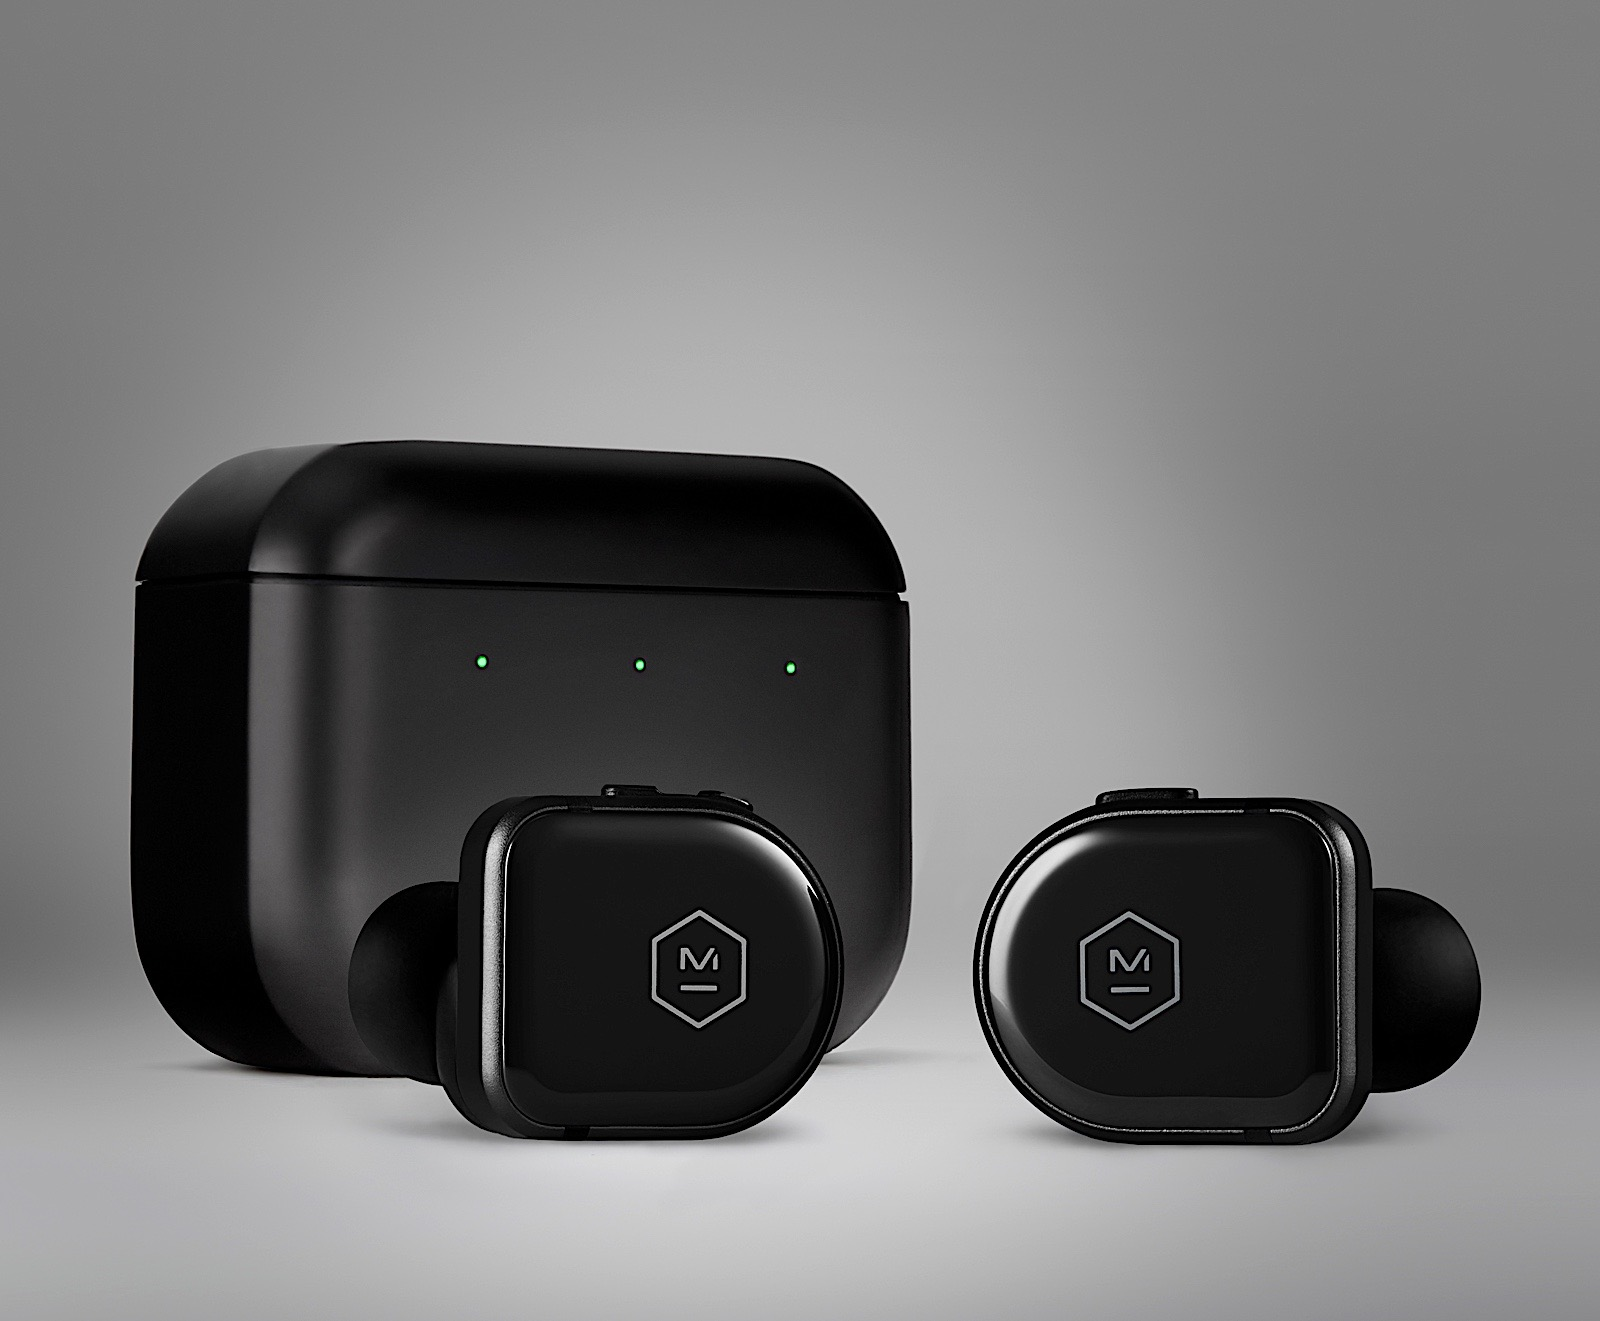 <p>Master &amp; Dynamic's latest true wireless earbuds have a familiar design with new materials, larger drivers and more robust active noise cancellation.</p>